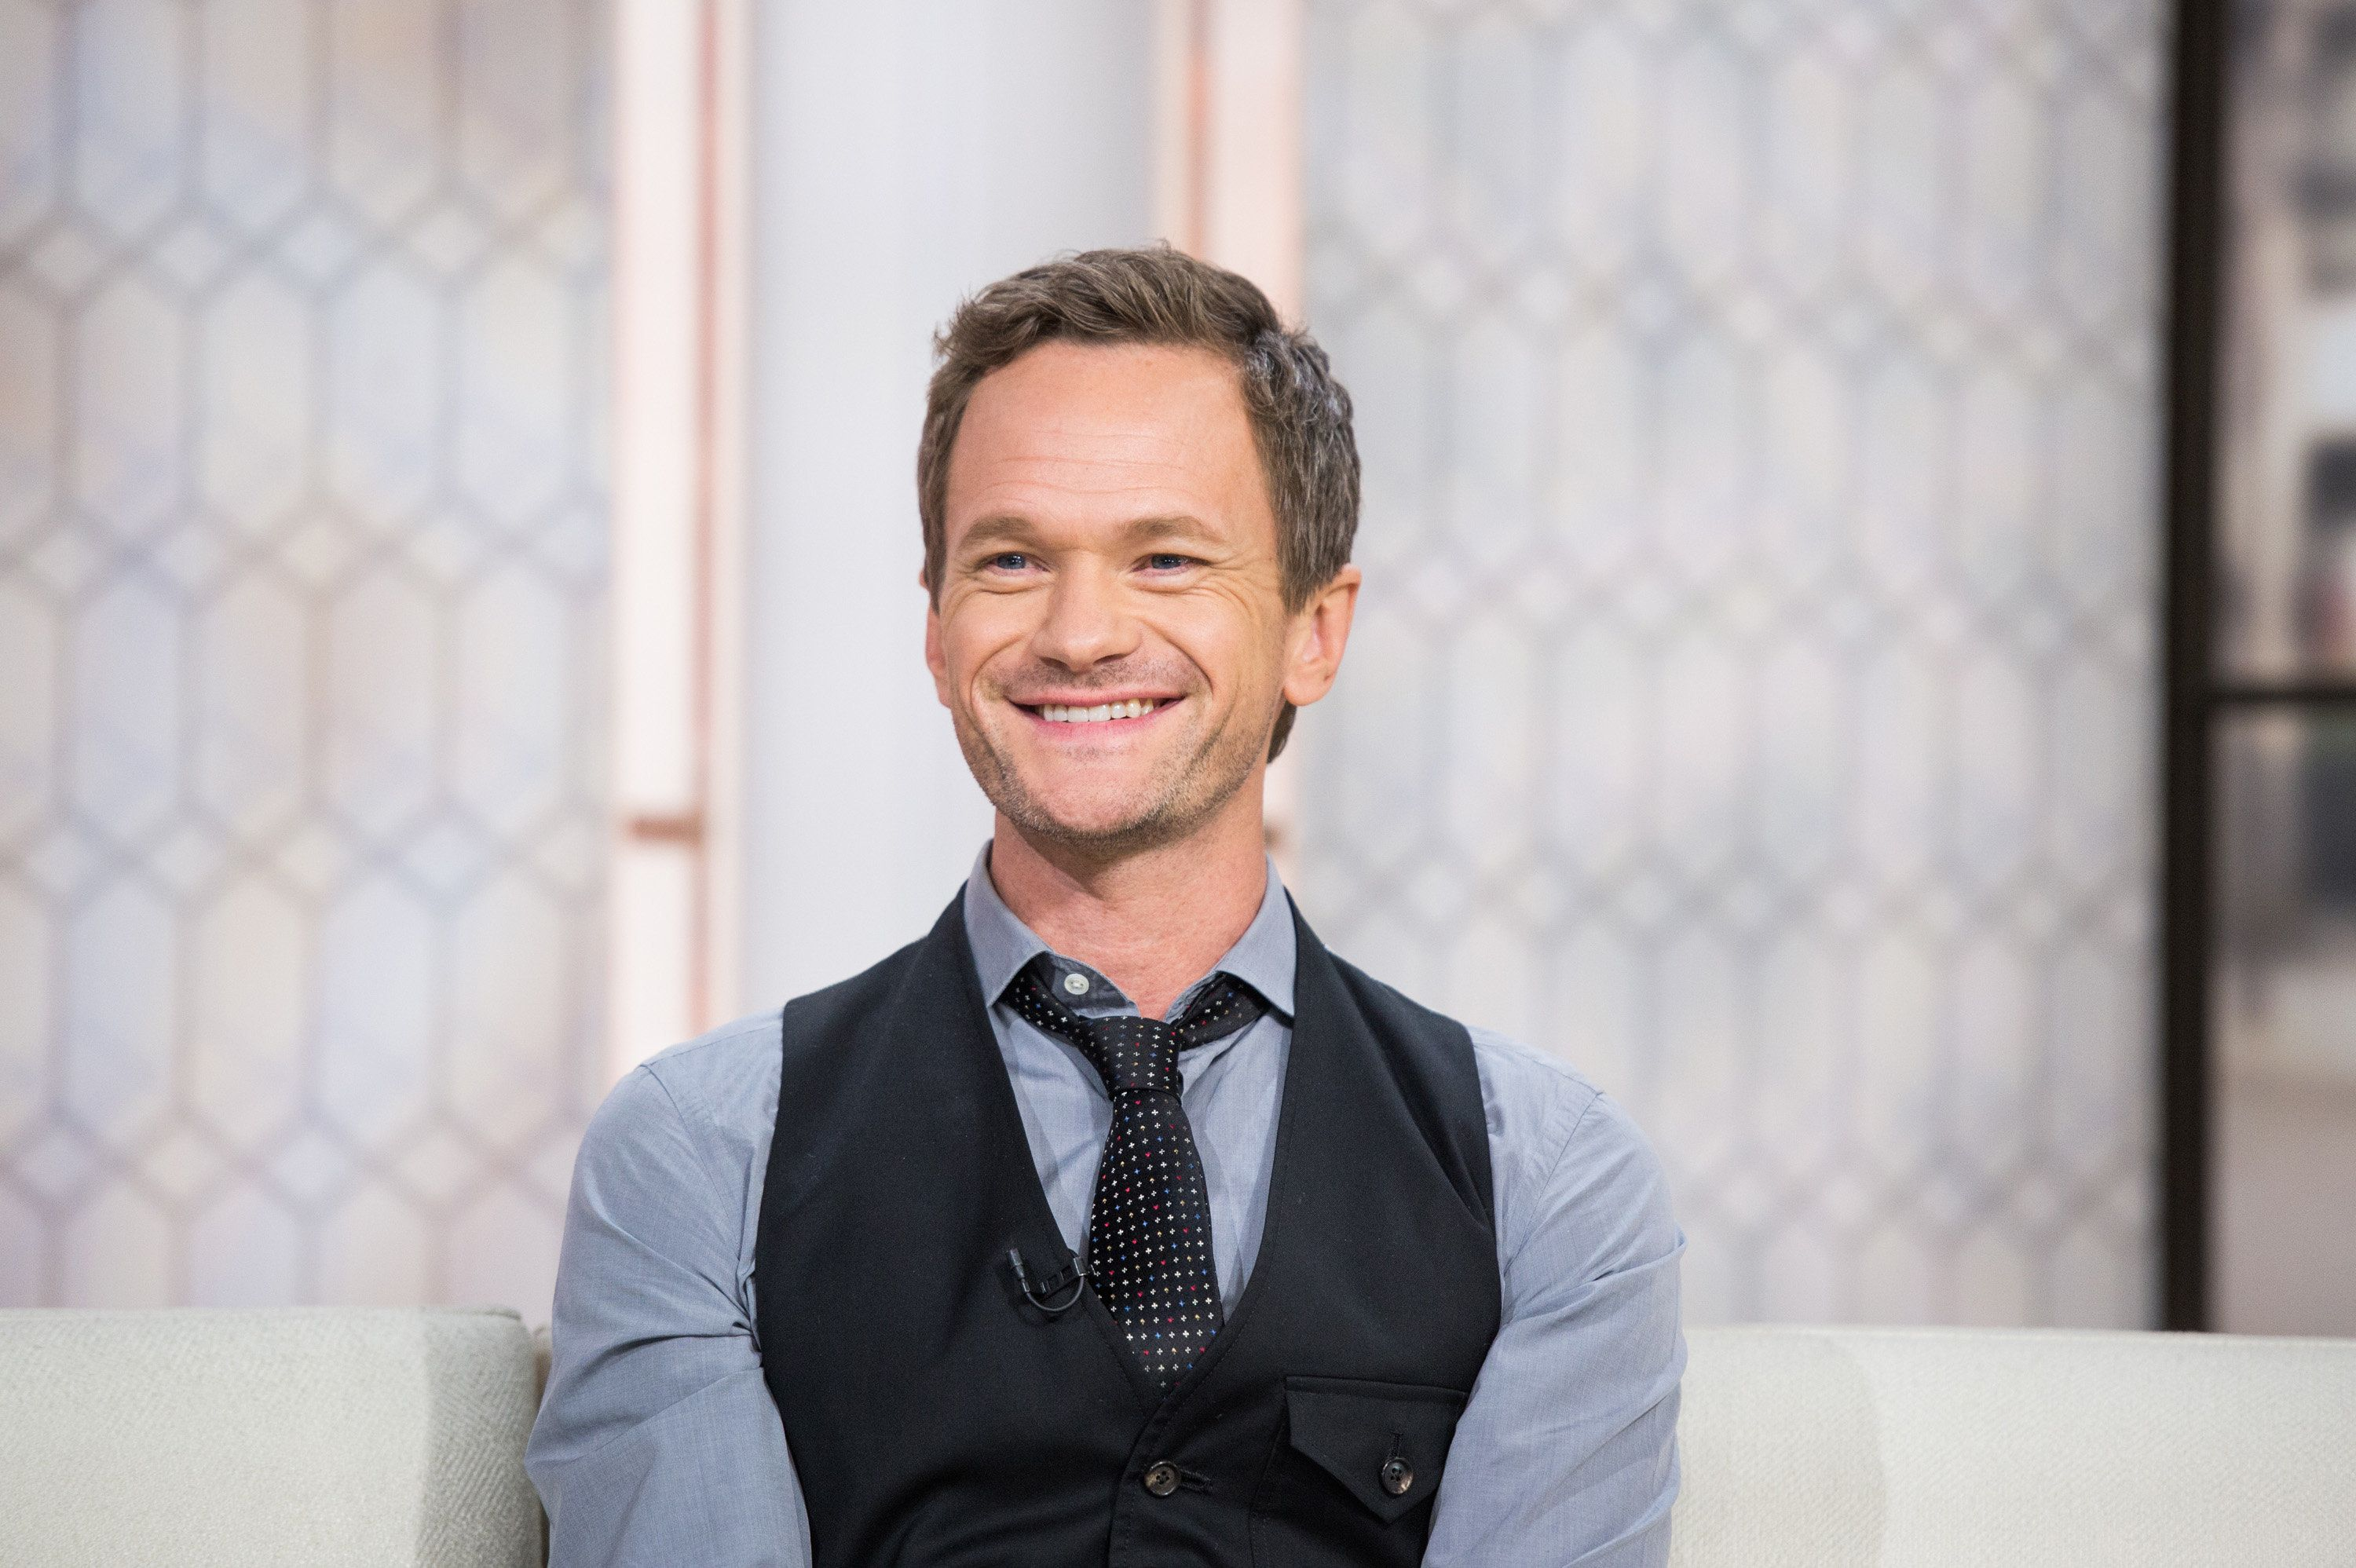 Neil Patrick Harris On Raising Honest, Compassionate Children